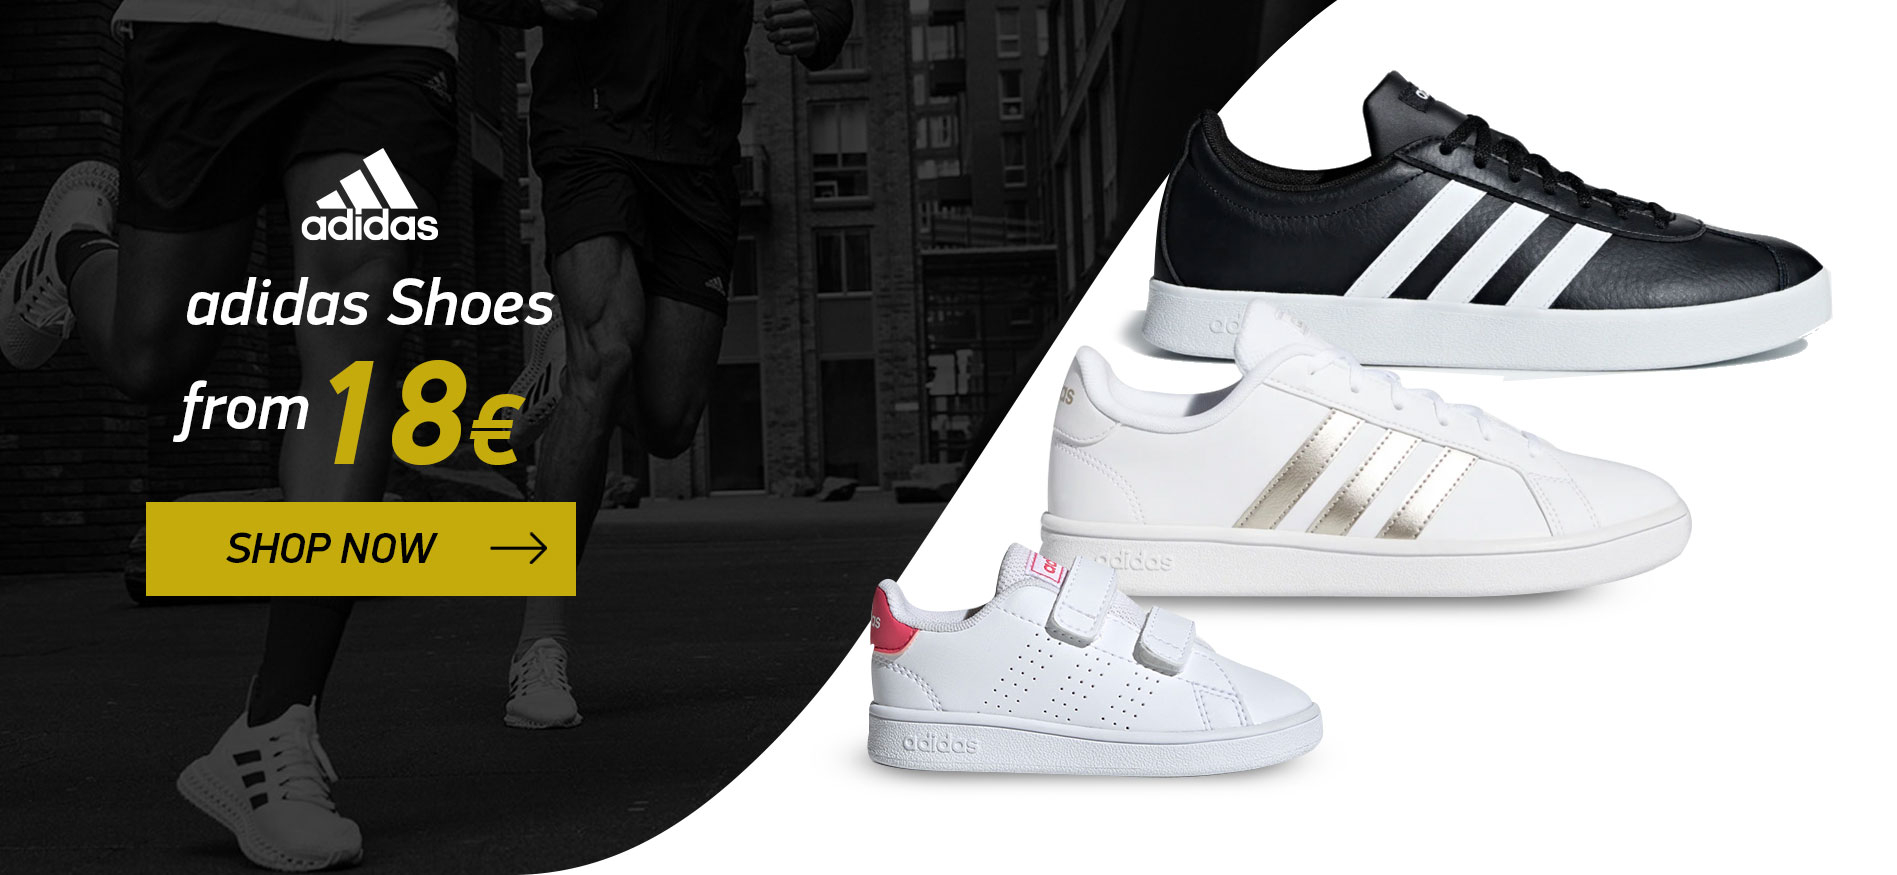 adidas shoes from 18€